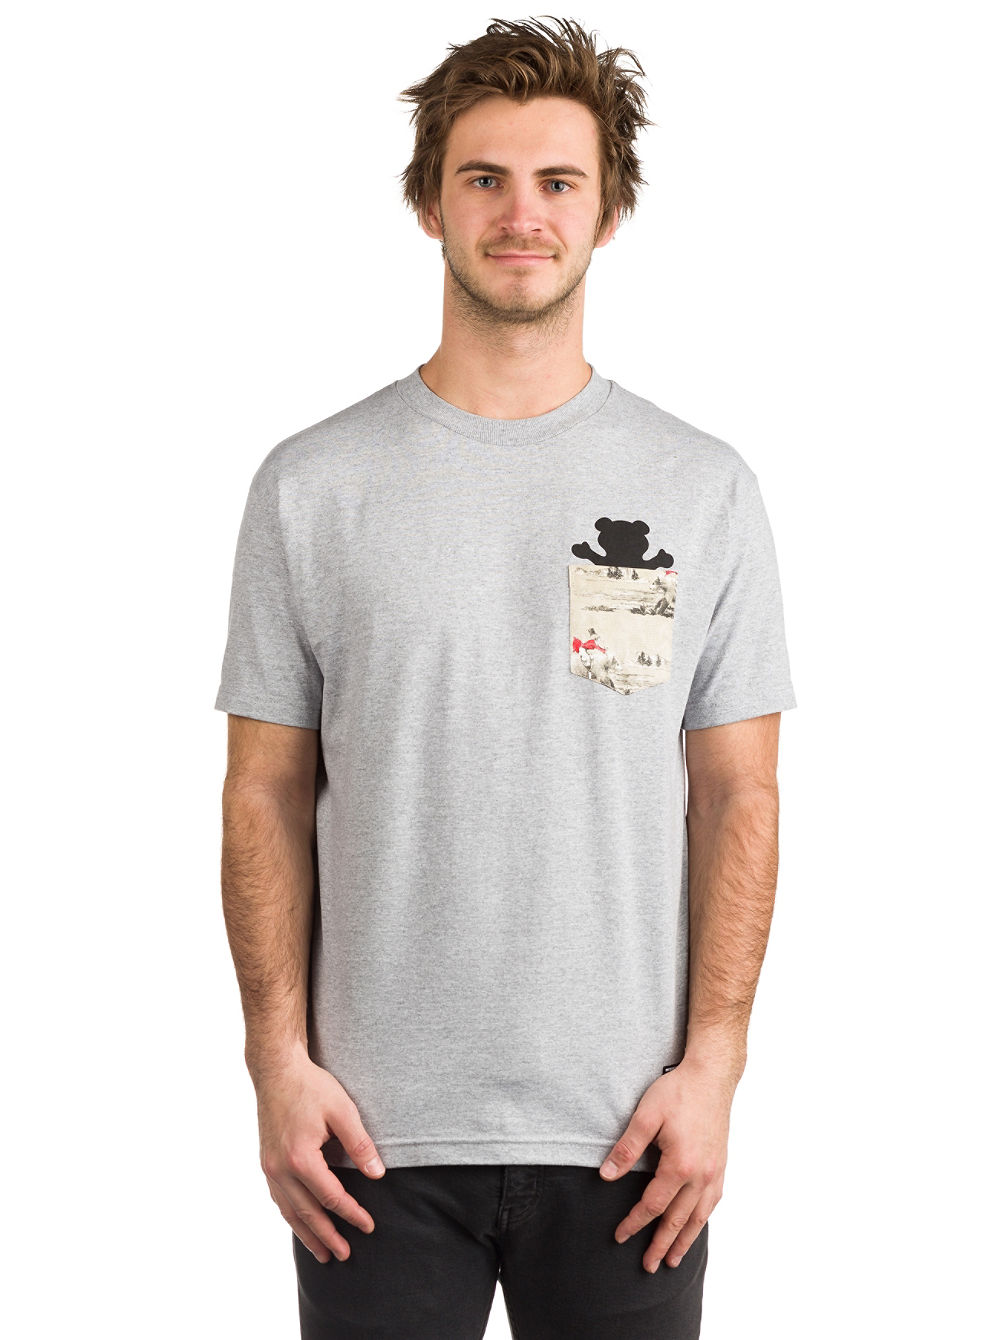 Hunting Lodge T-Shirt